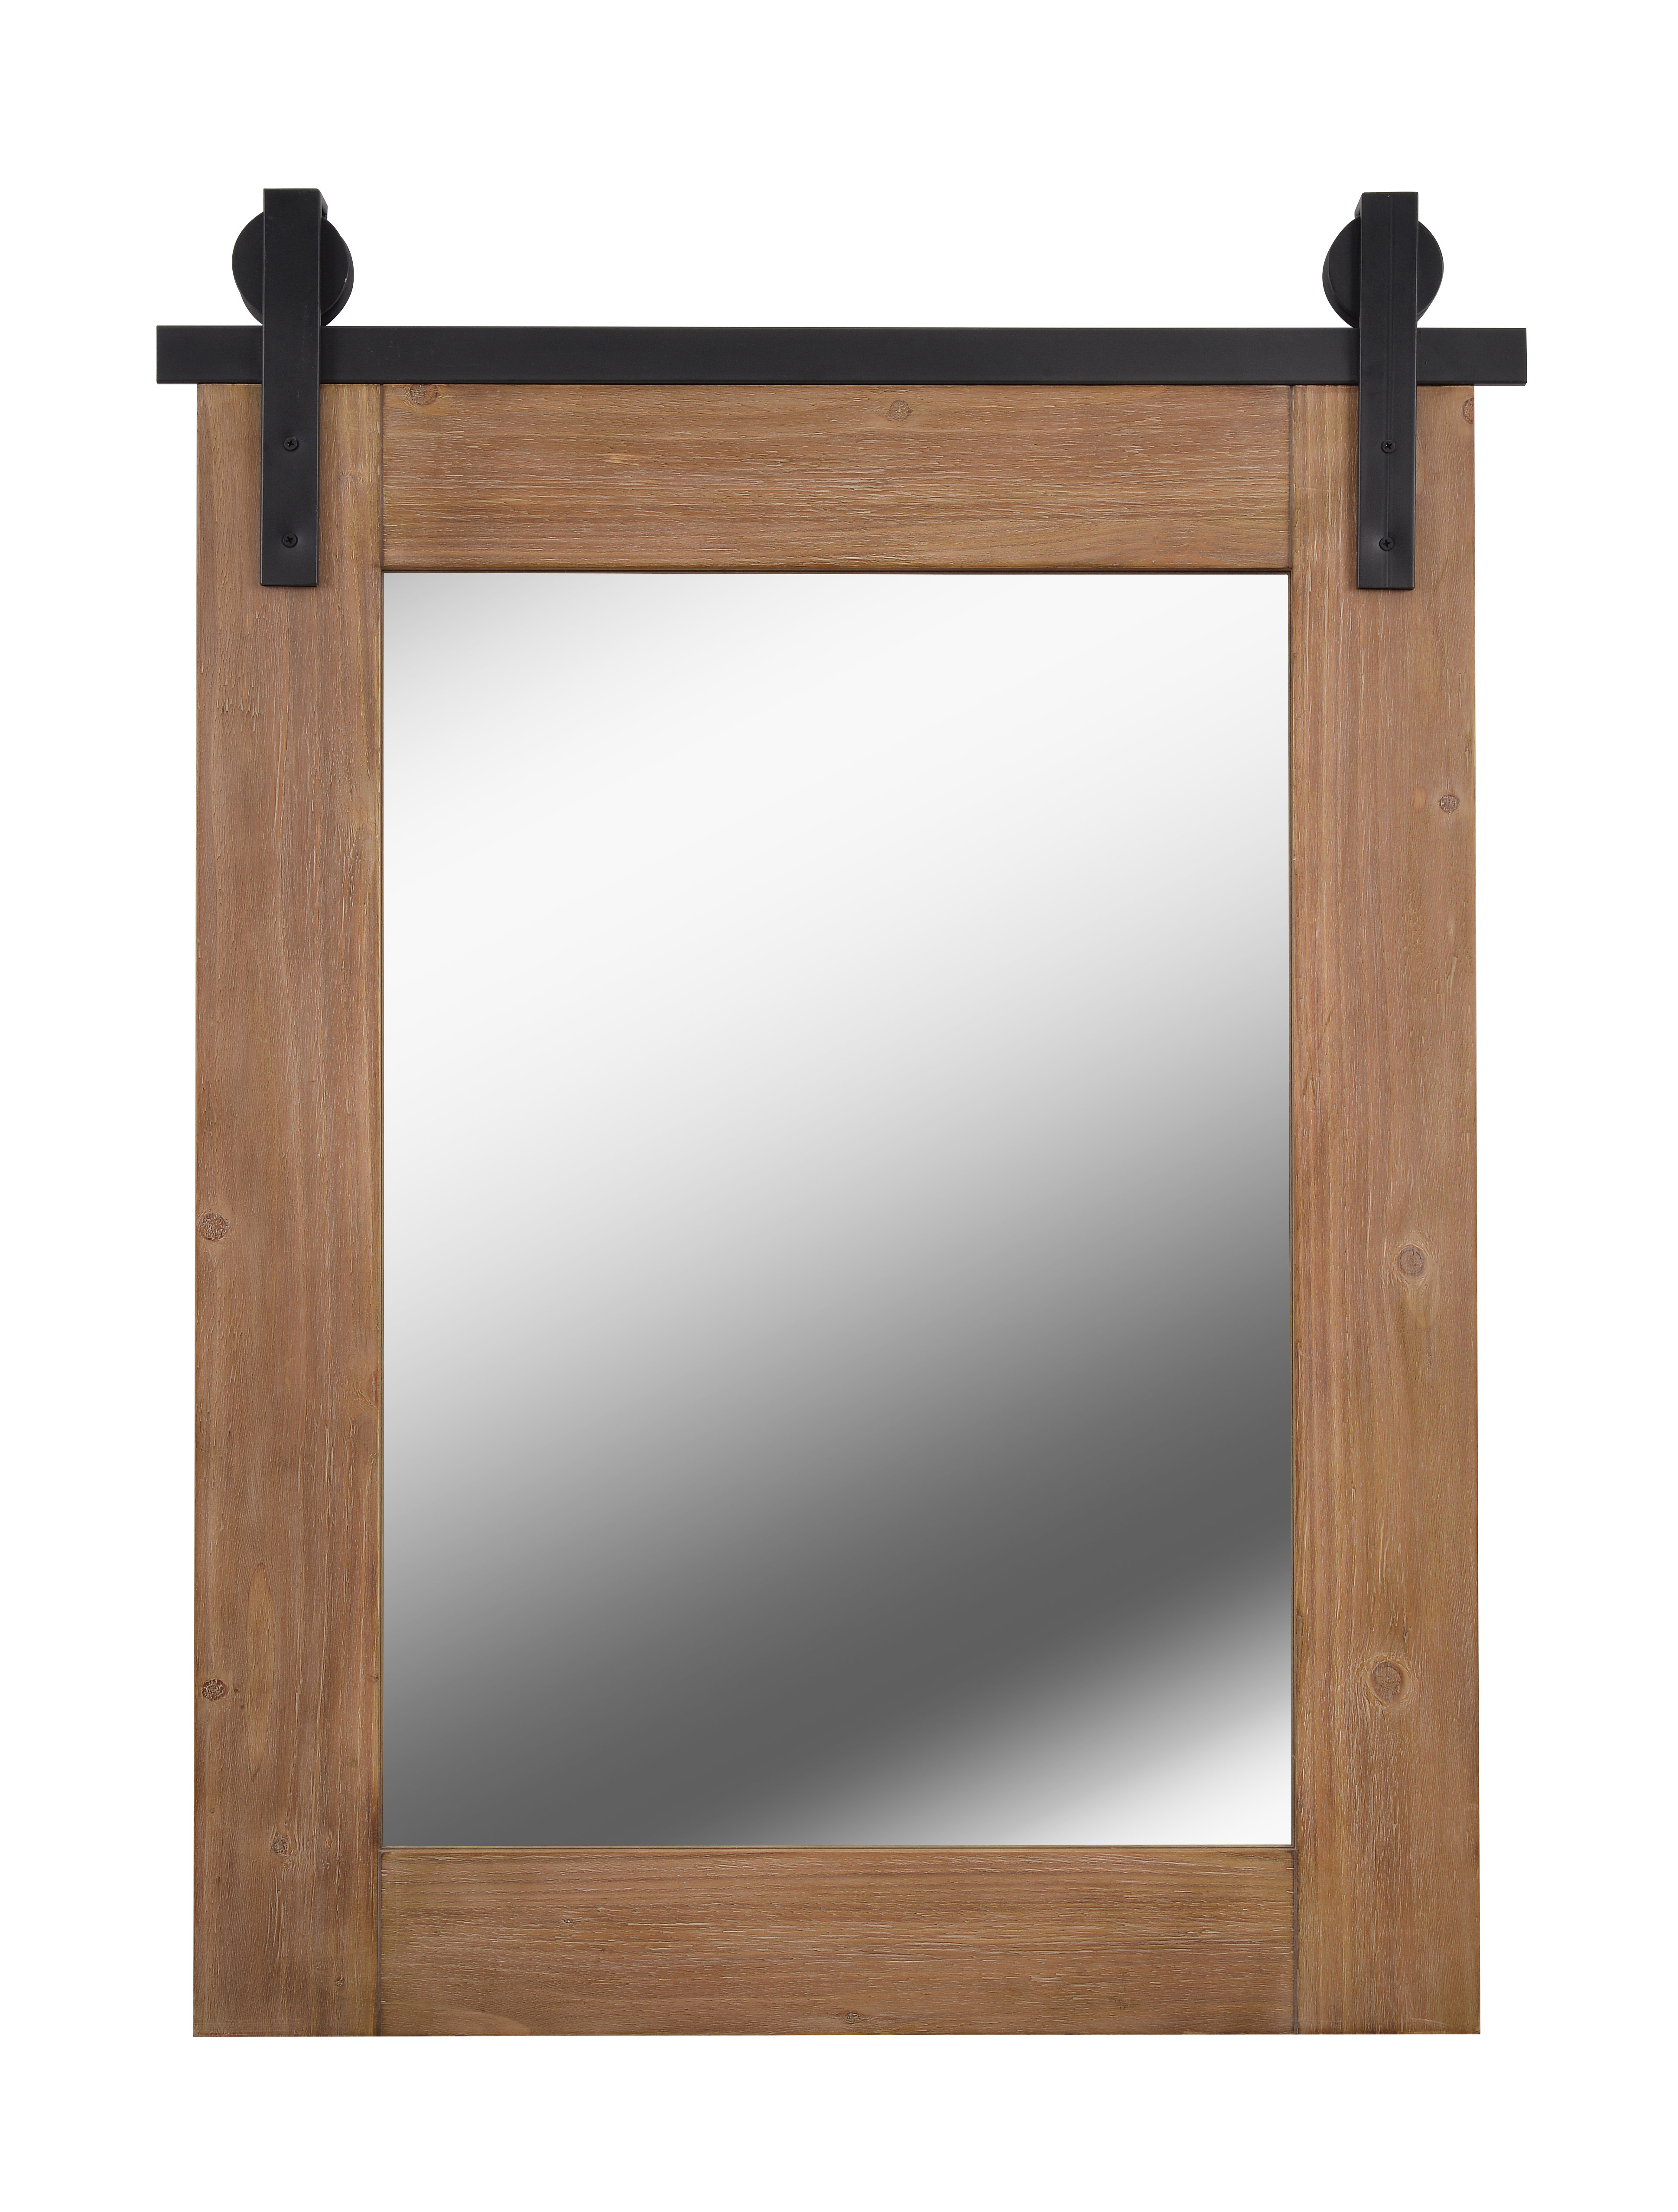 Robson Accent Mirror Intended For Berinhard Accent Mirrors (View 9 of 20)